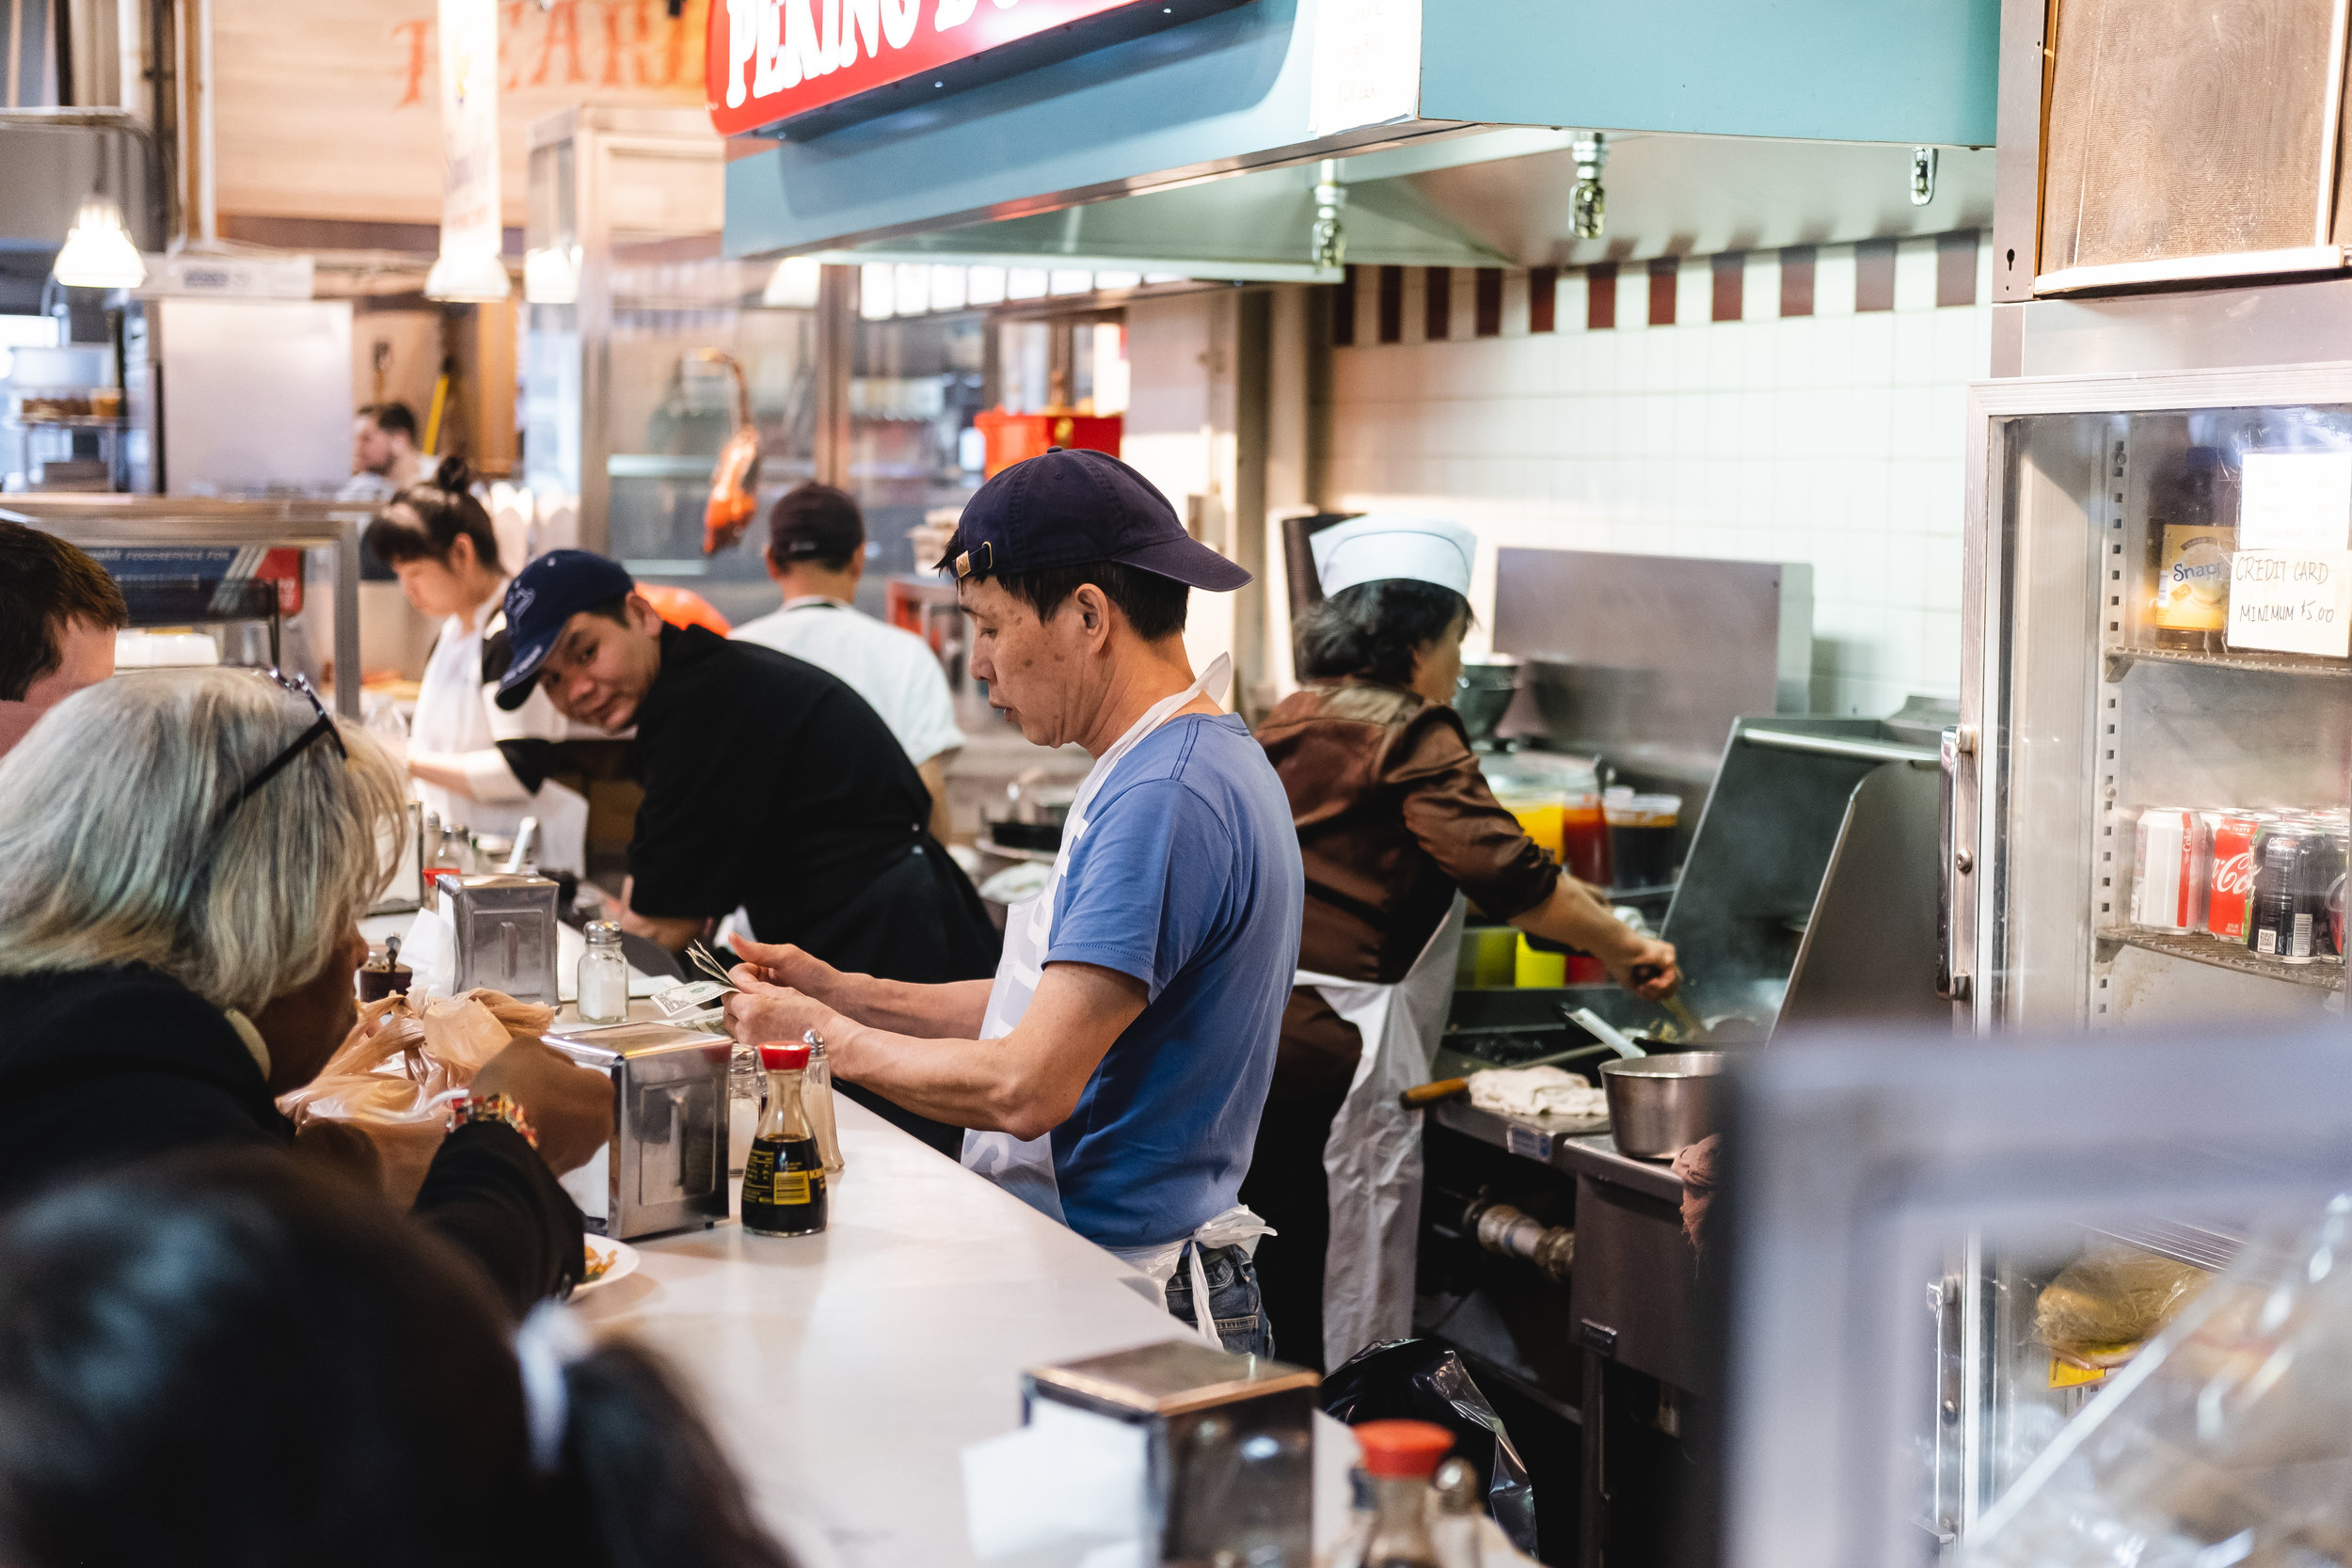 2019_READING TERMINAL MARKET_FOOD_THE PHILLY CHECKLIST-14.jpg